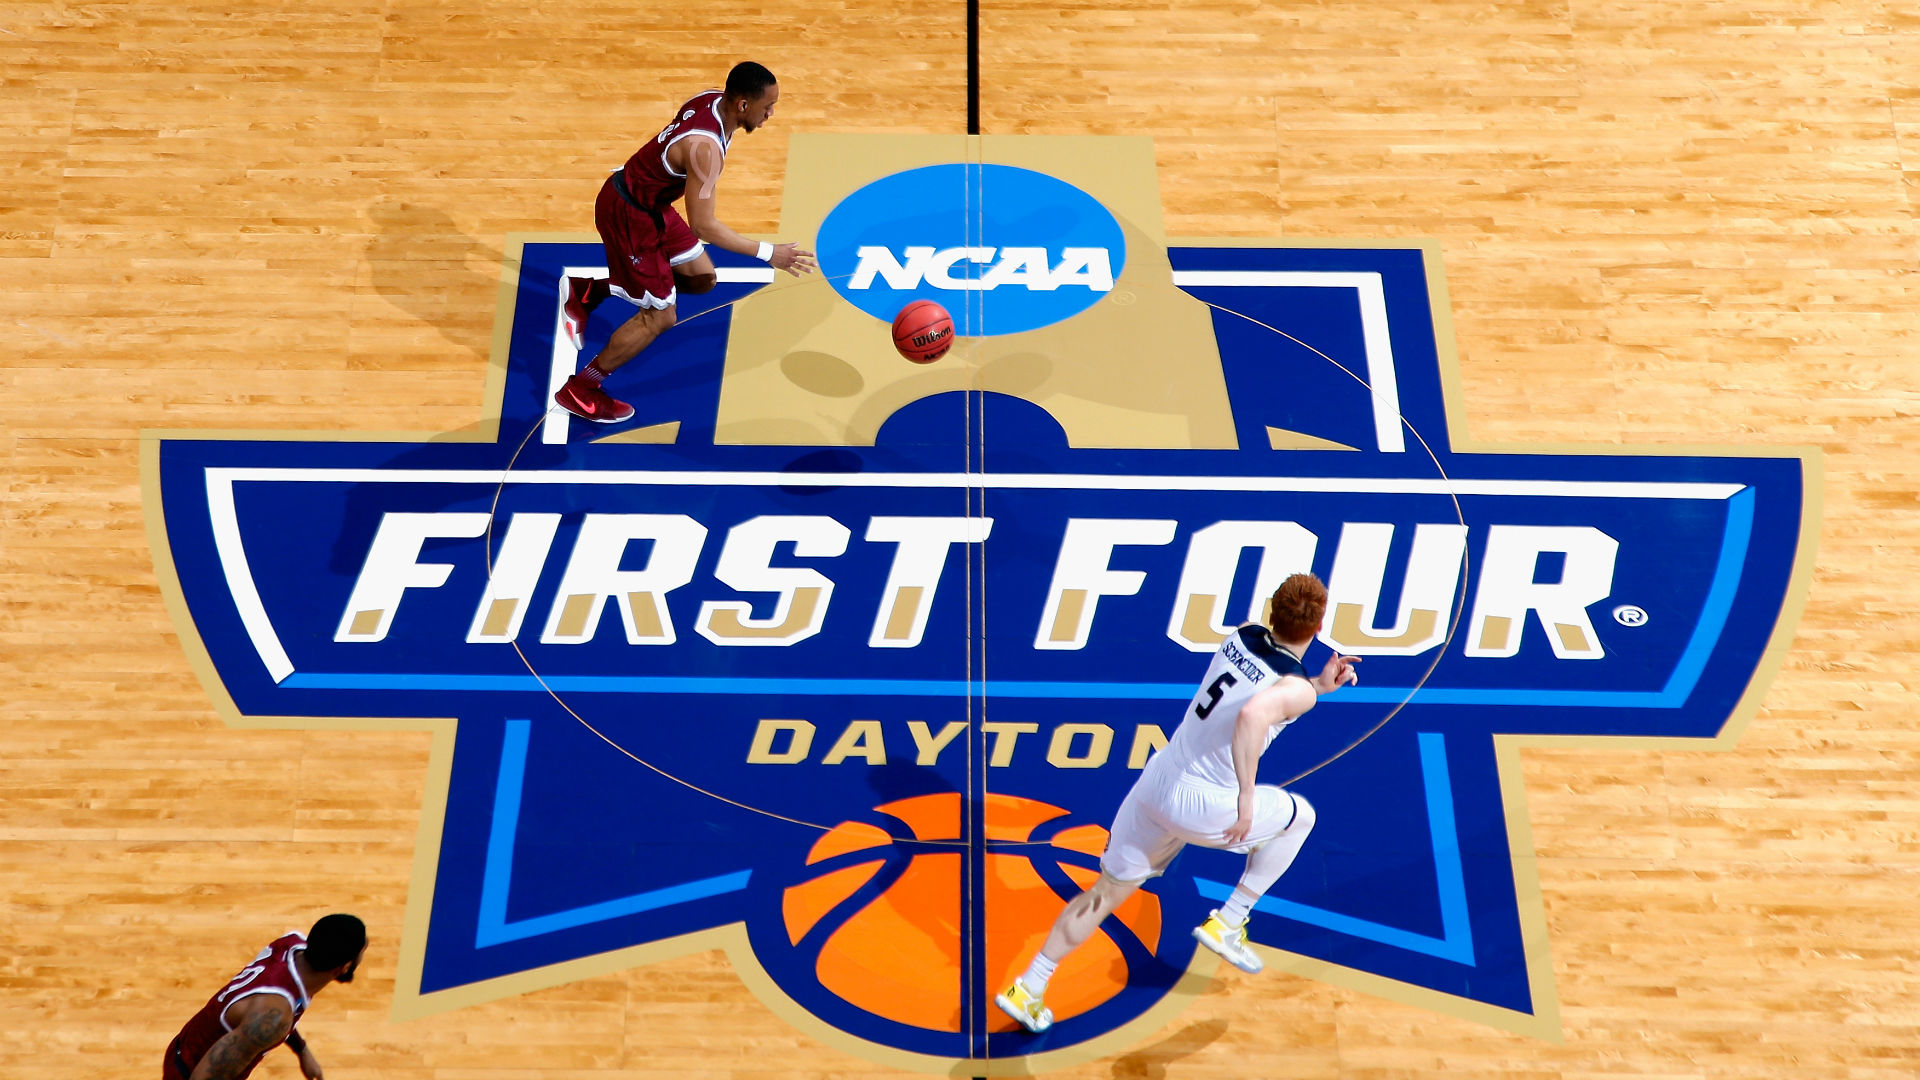 March 2021 2021 schedule: times, channels, scores for Thursday's first four games of the NCAA Championship